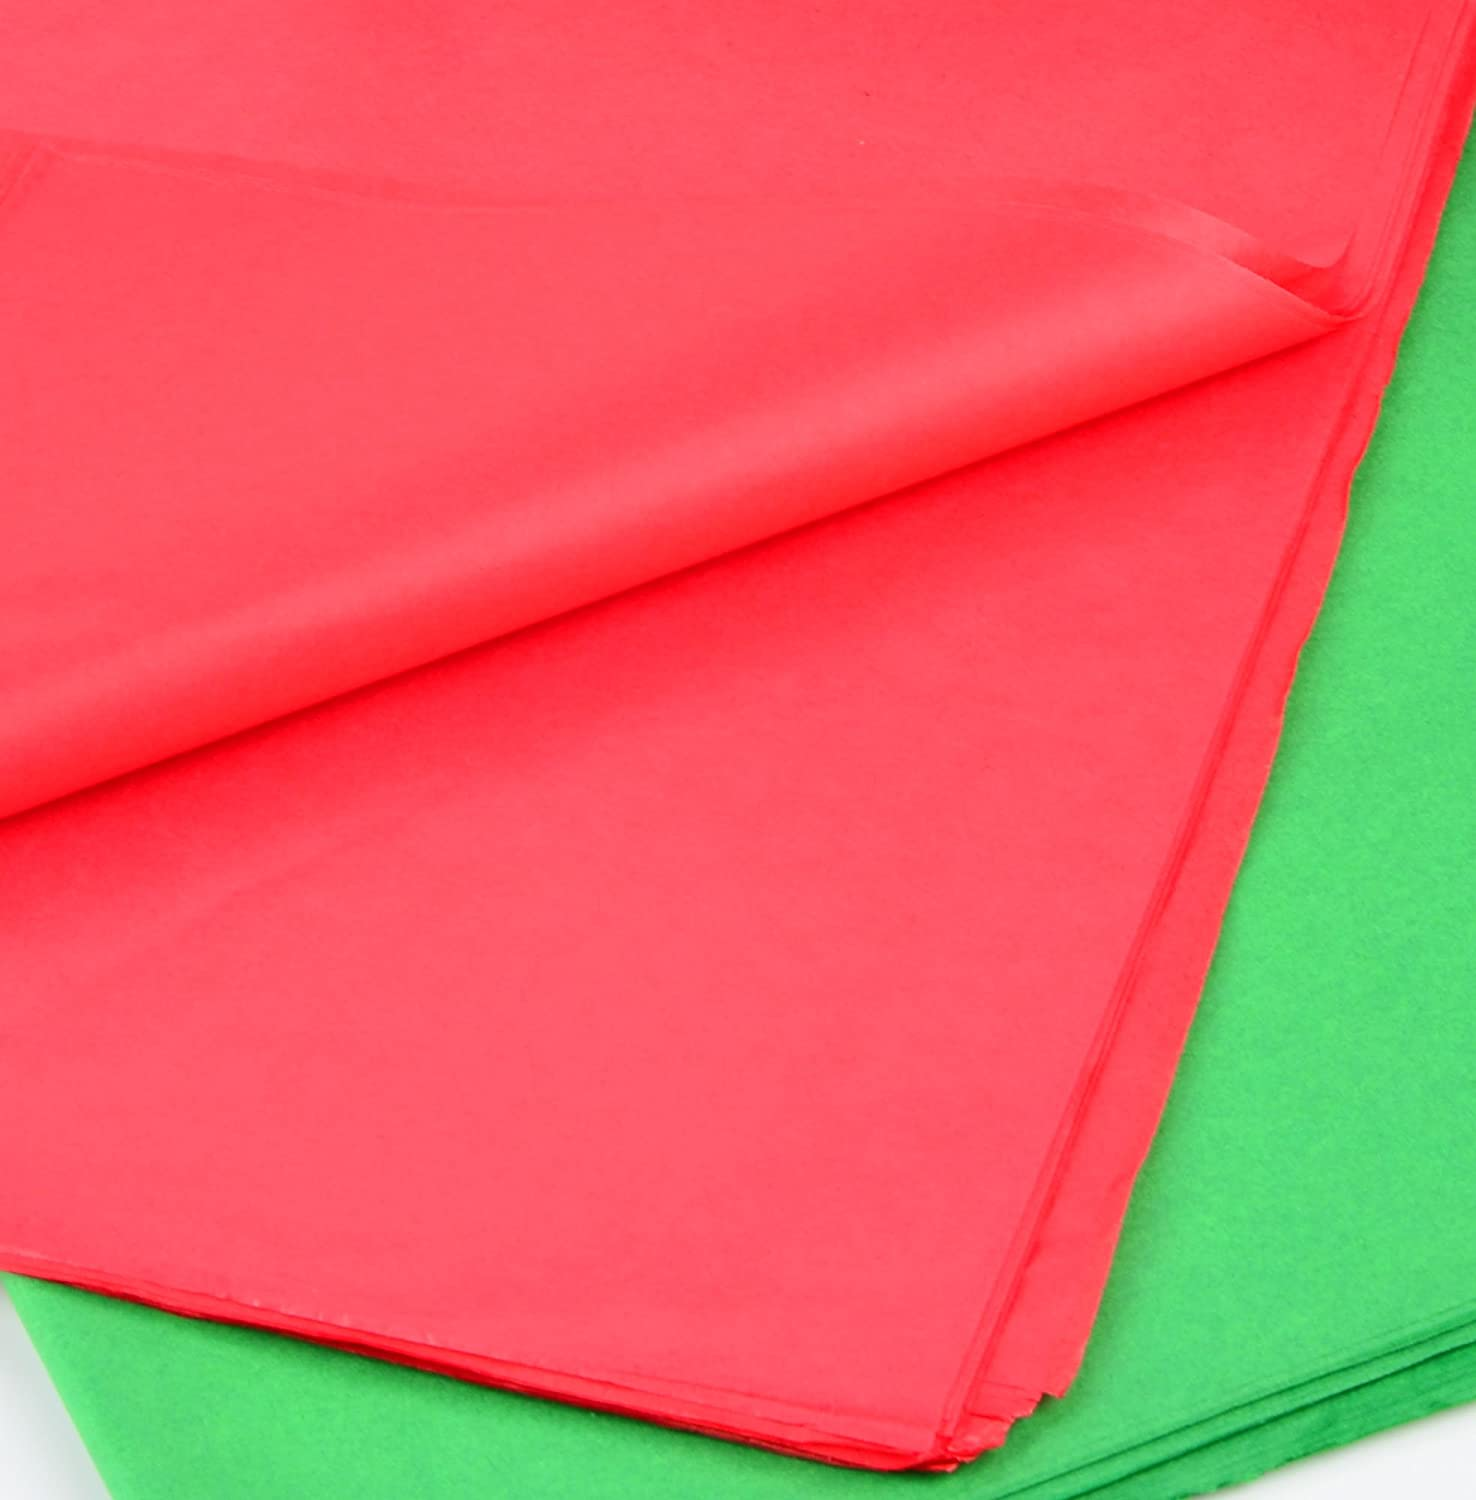 ; 120 Sheets per Color Easy and Fast Gift Wrapping Accessory for Christmas Gifts and Wine Bottles 360 Sheets 20 x 20 Christmas Tissue Paper Assortment Red, Green /& White